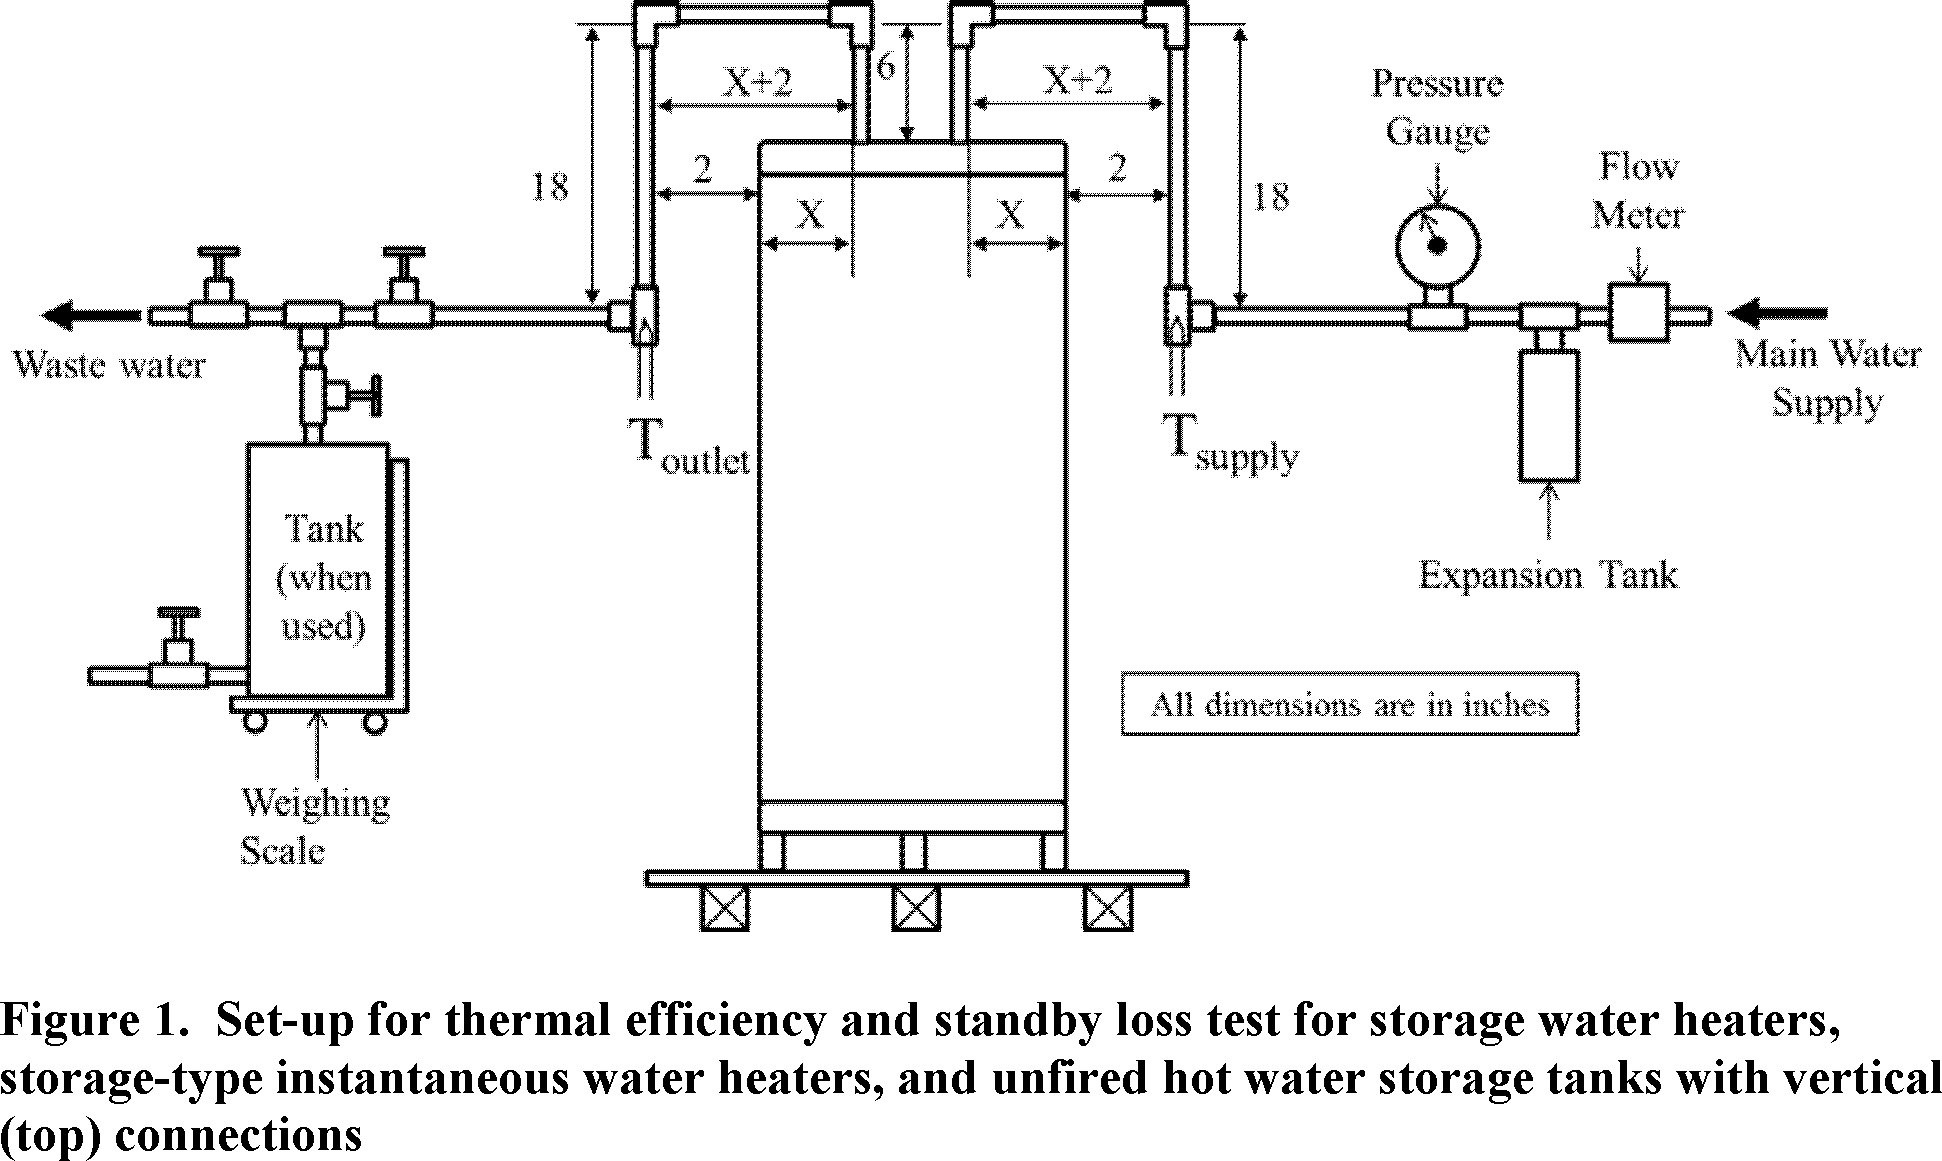 hight resolution of vertical hot water storage tank piping diagram wiring diagrams u2022 rh 17 eap ing de hot water heater plumbing diagram hot water heater plumbing diagram